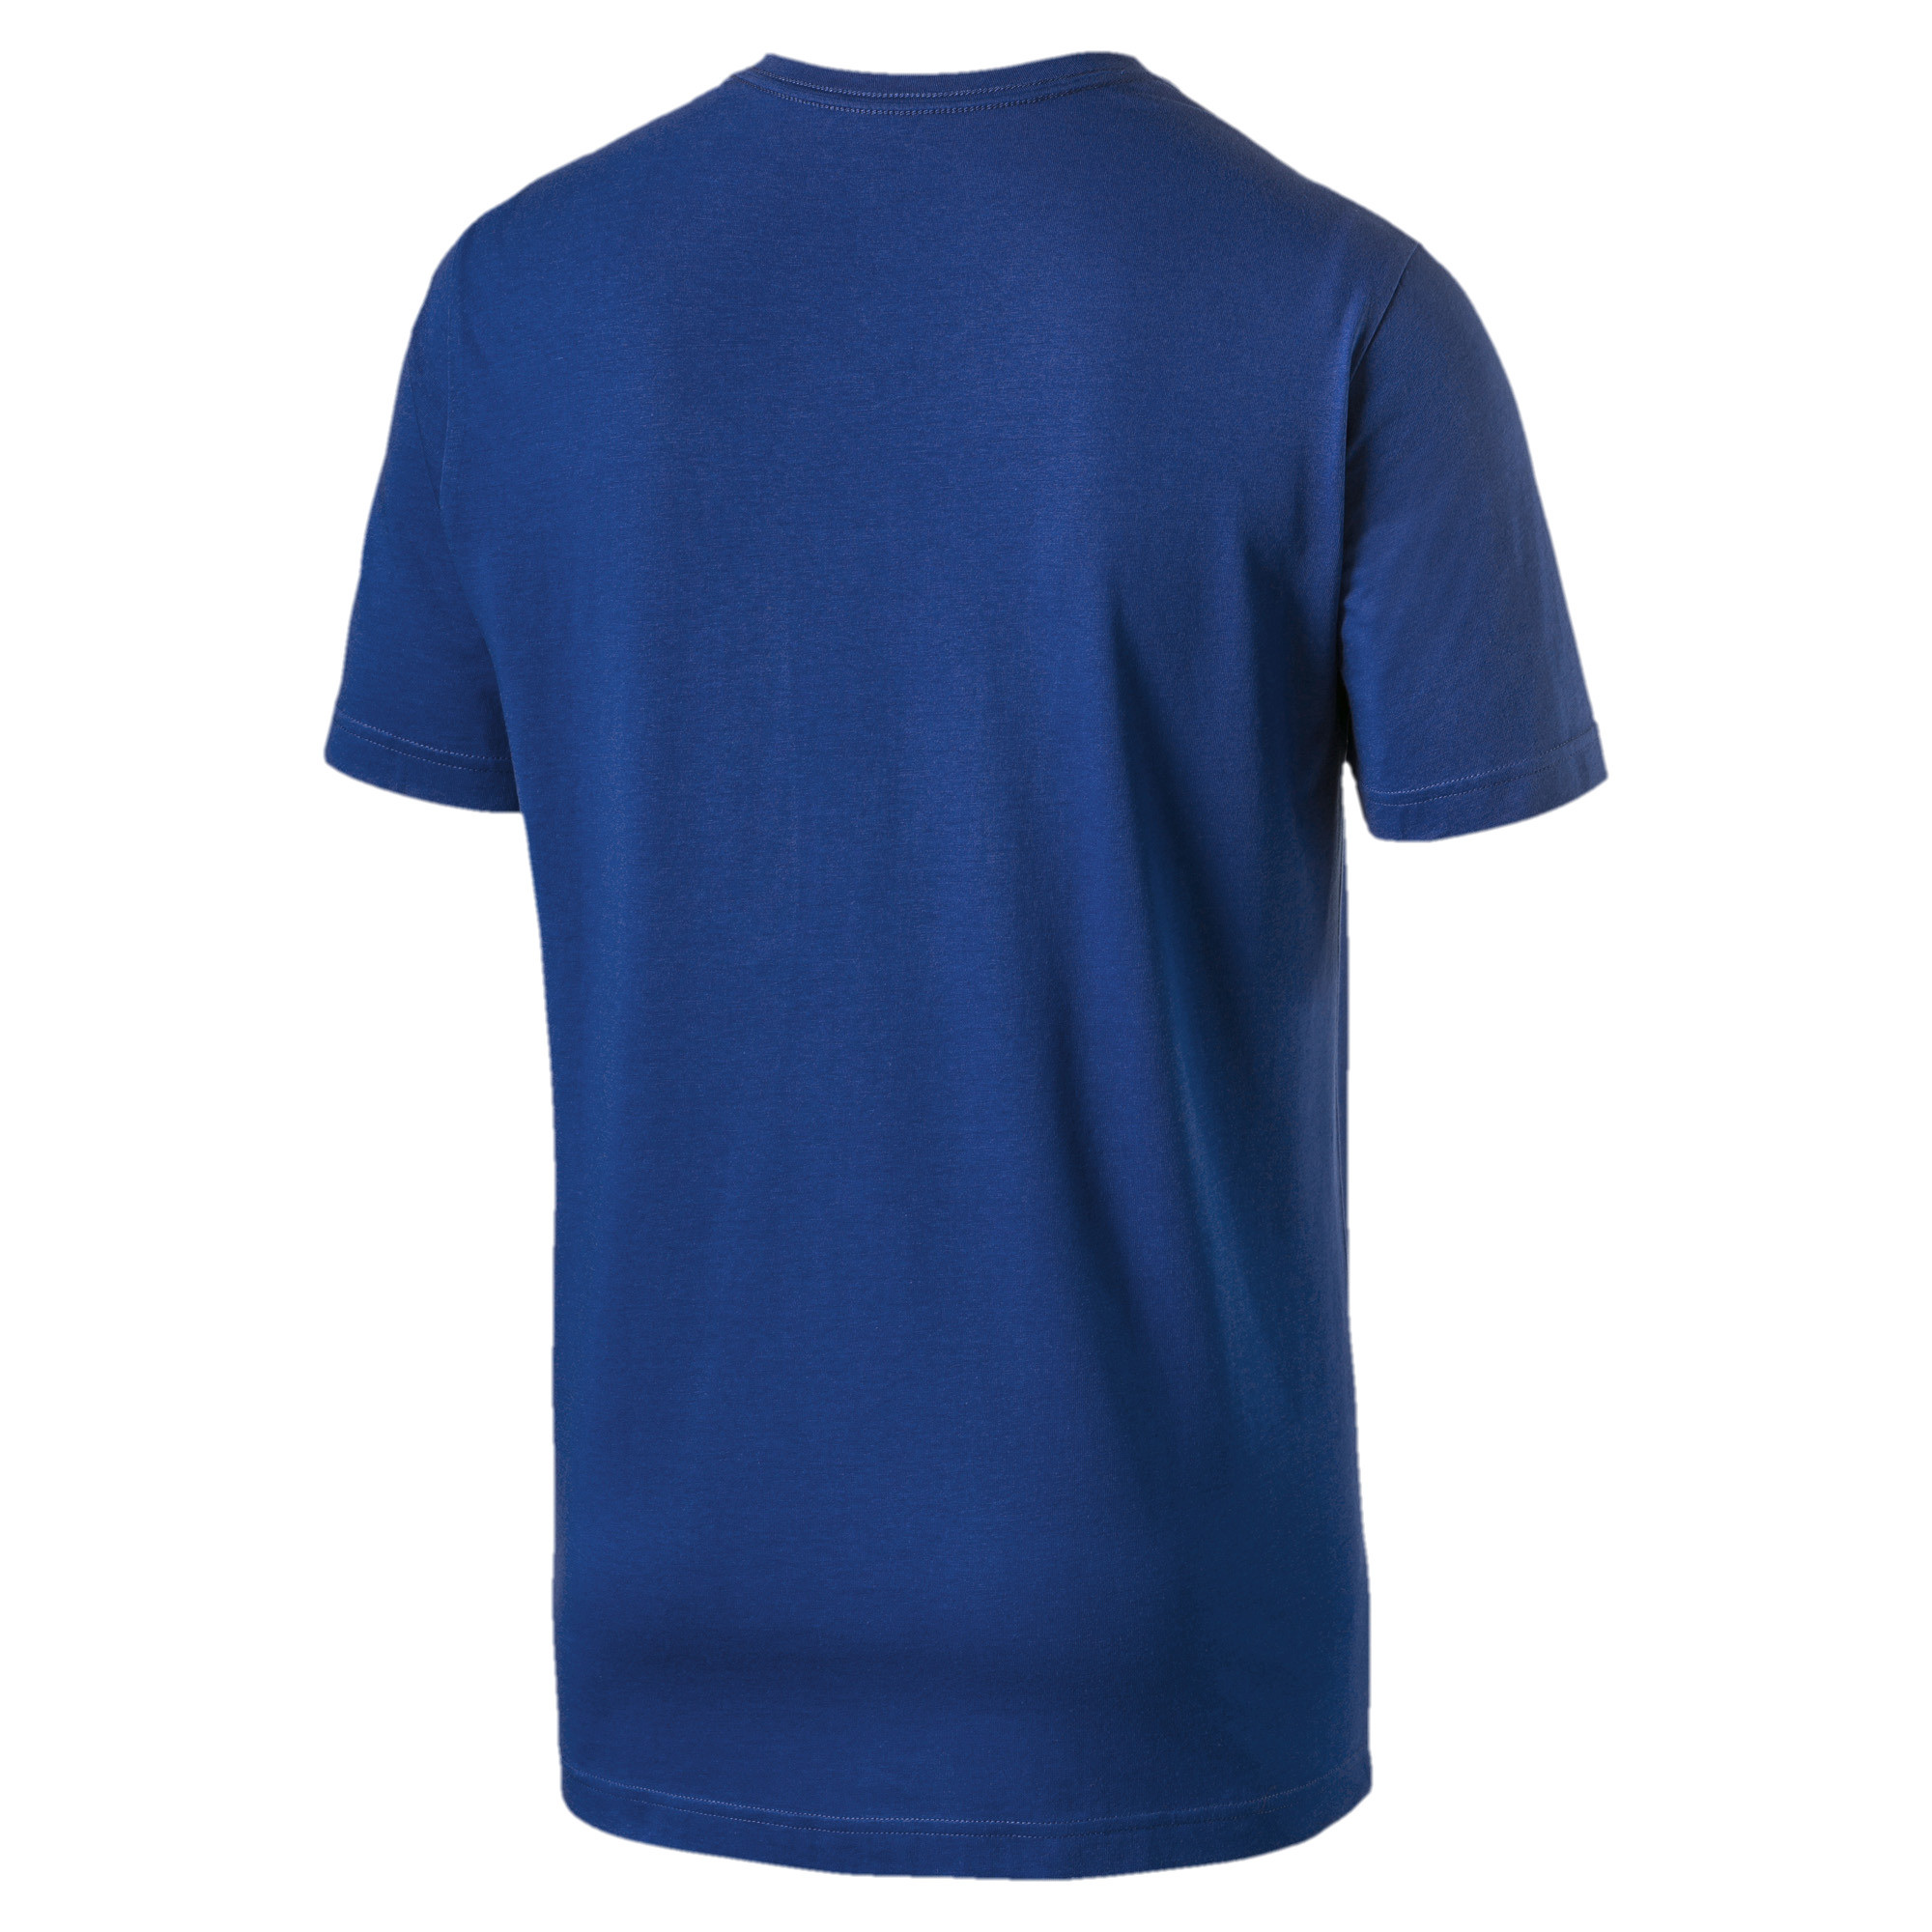 PUMA-Essentials-Men-039-s-V-Neck-Tee-Men-Tee-Basics thumbnail 25